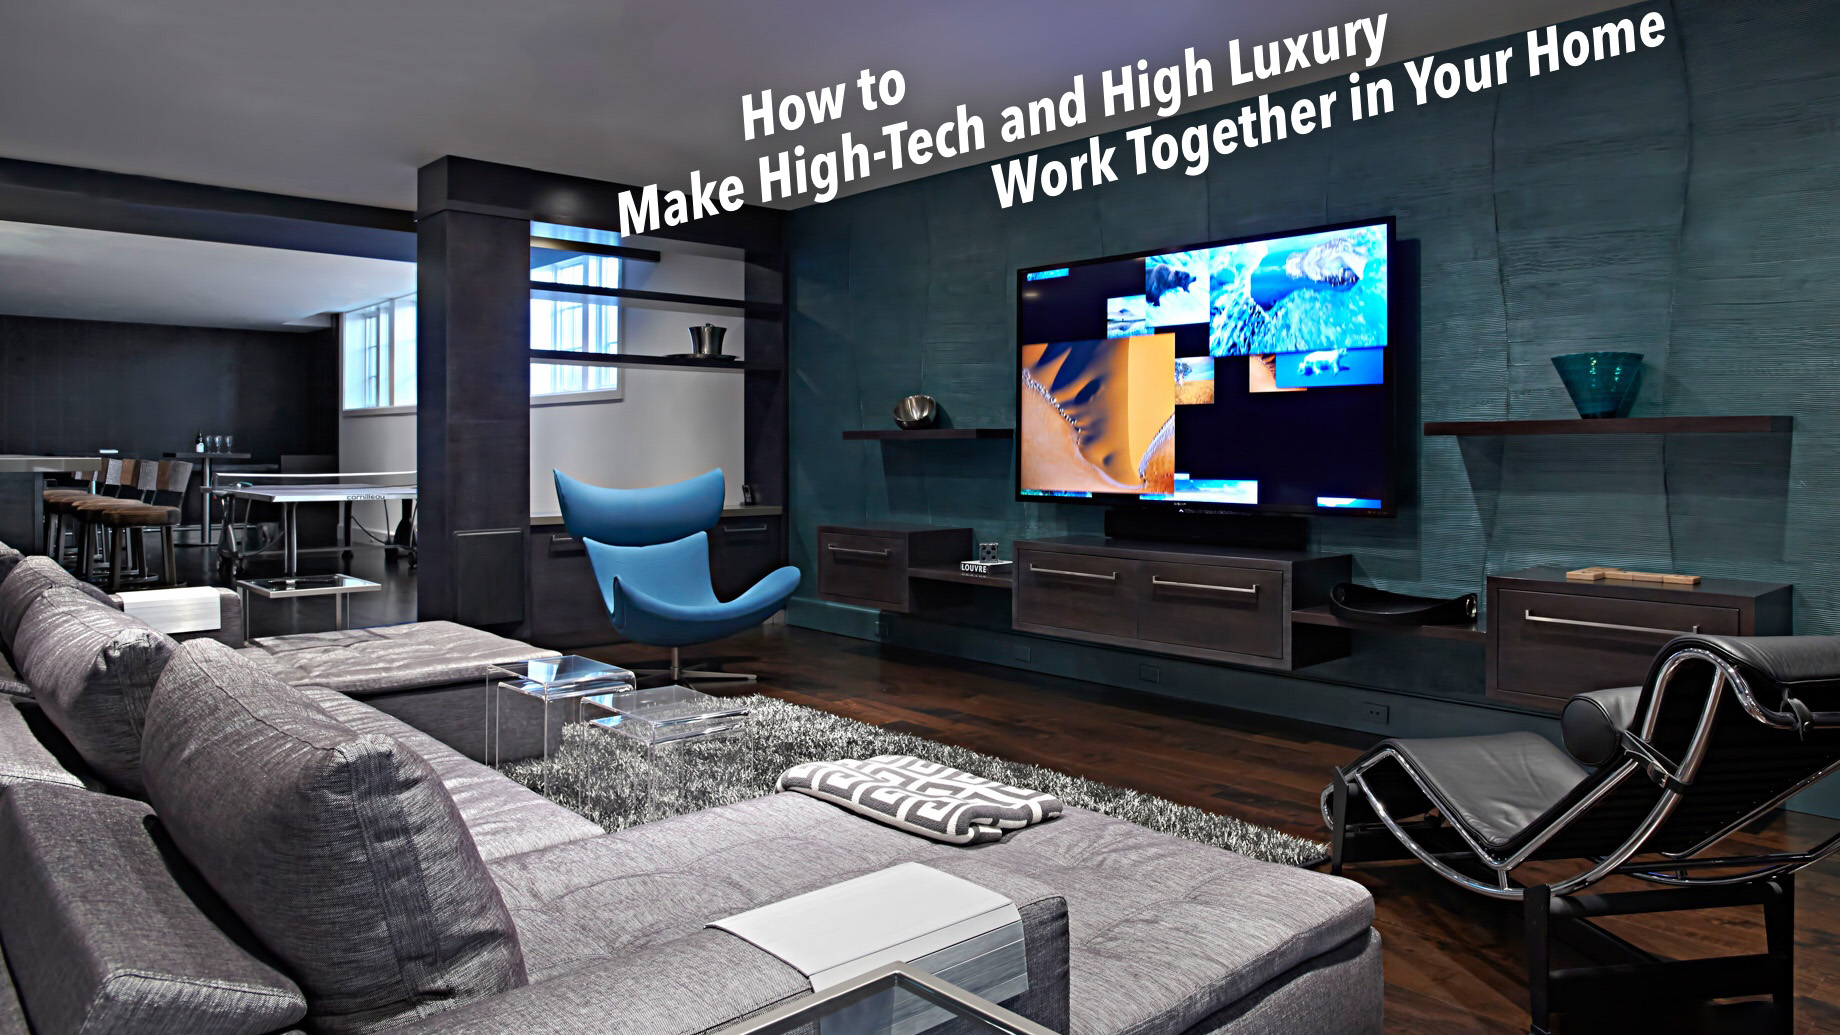 How to Make High-Tech and High Luxury Work Together in Your Home